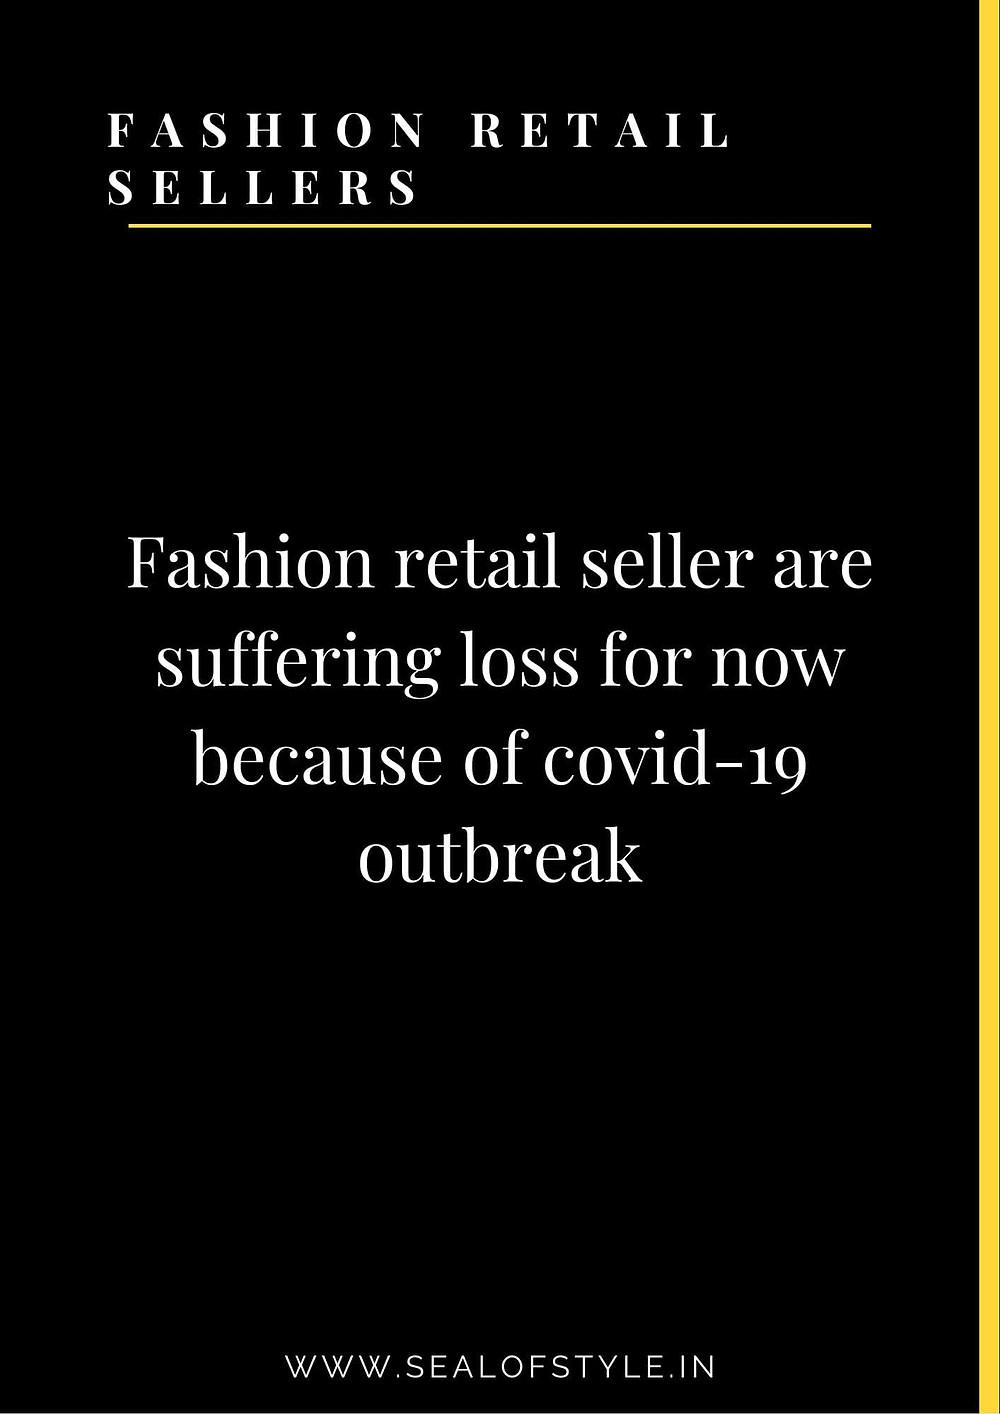 Information about fashion retail business demand in future